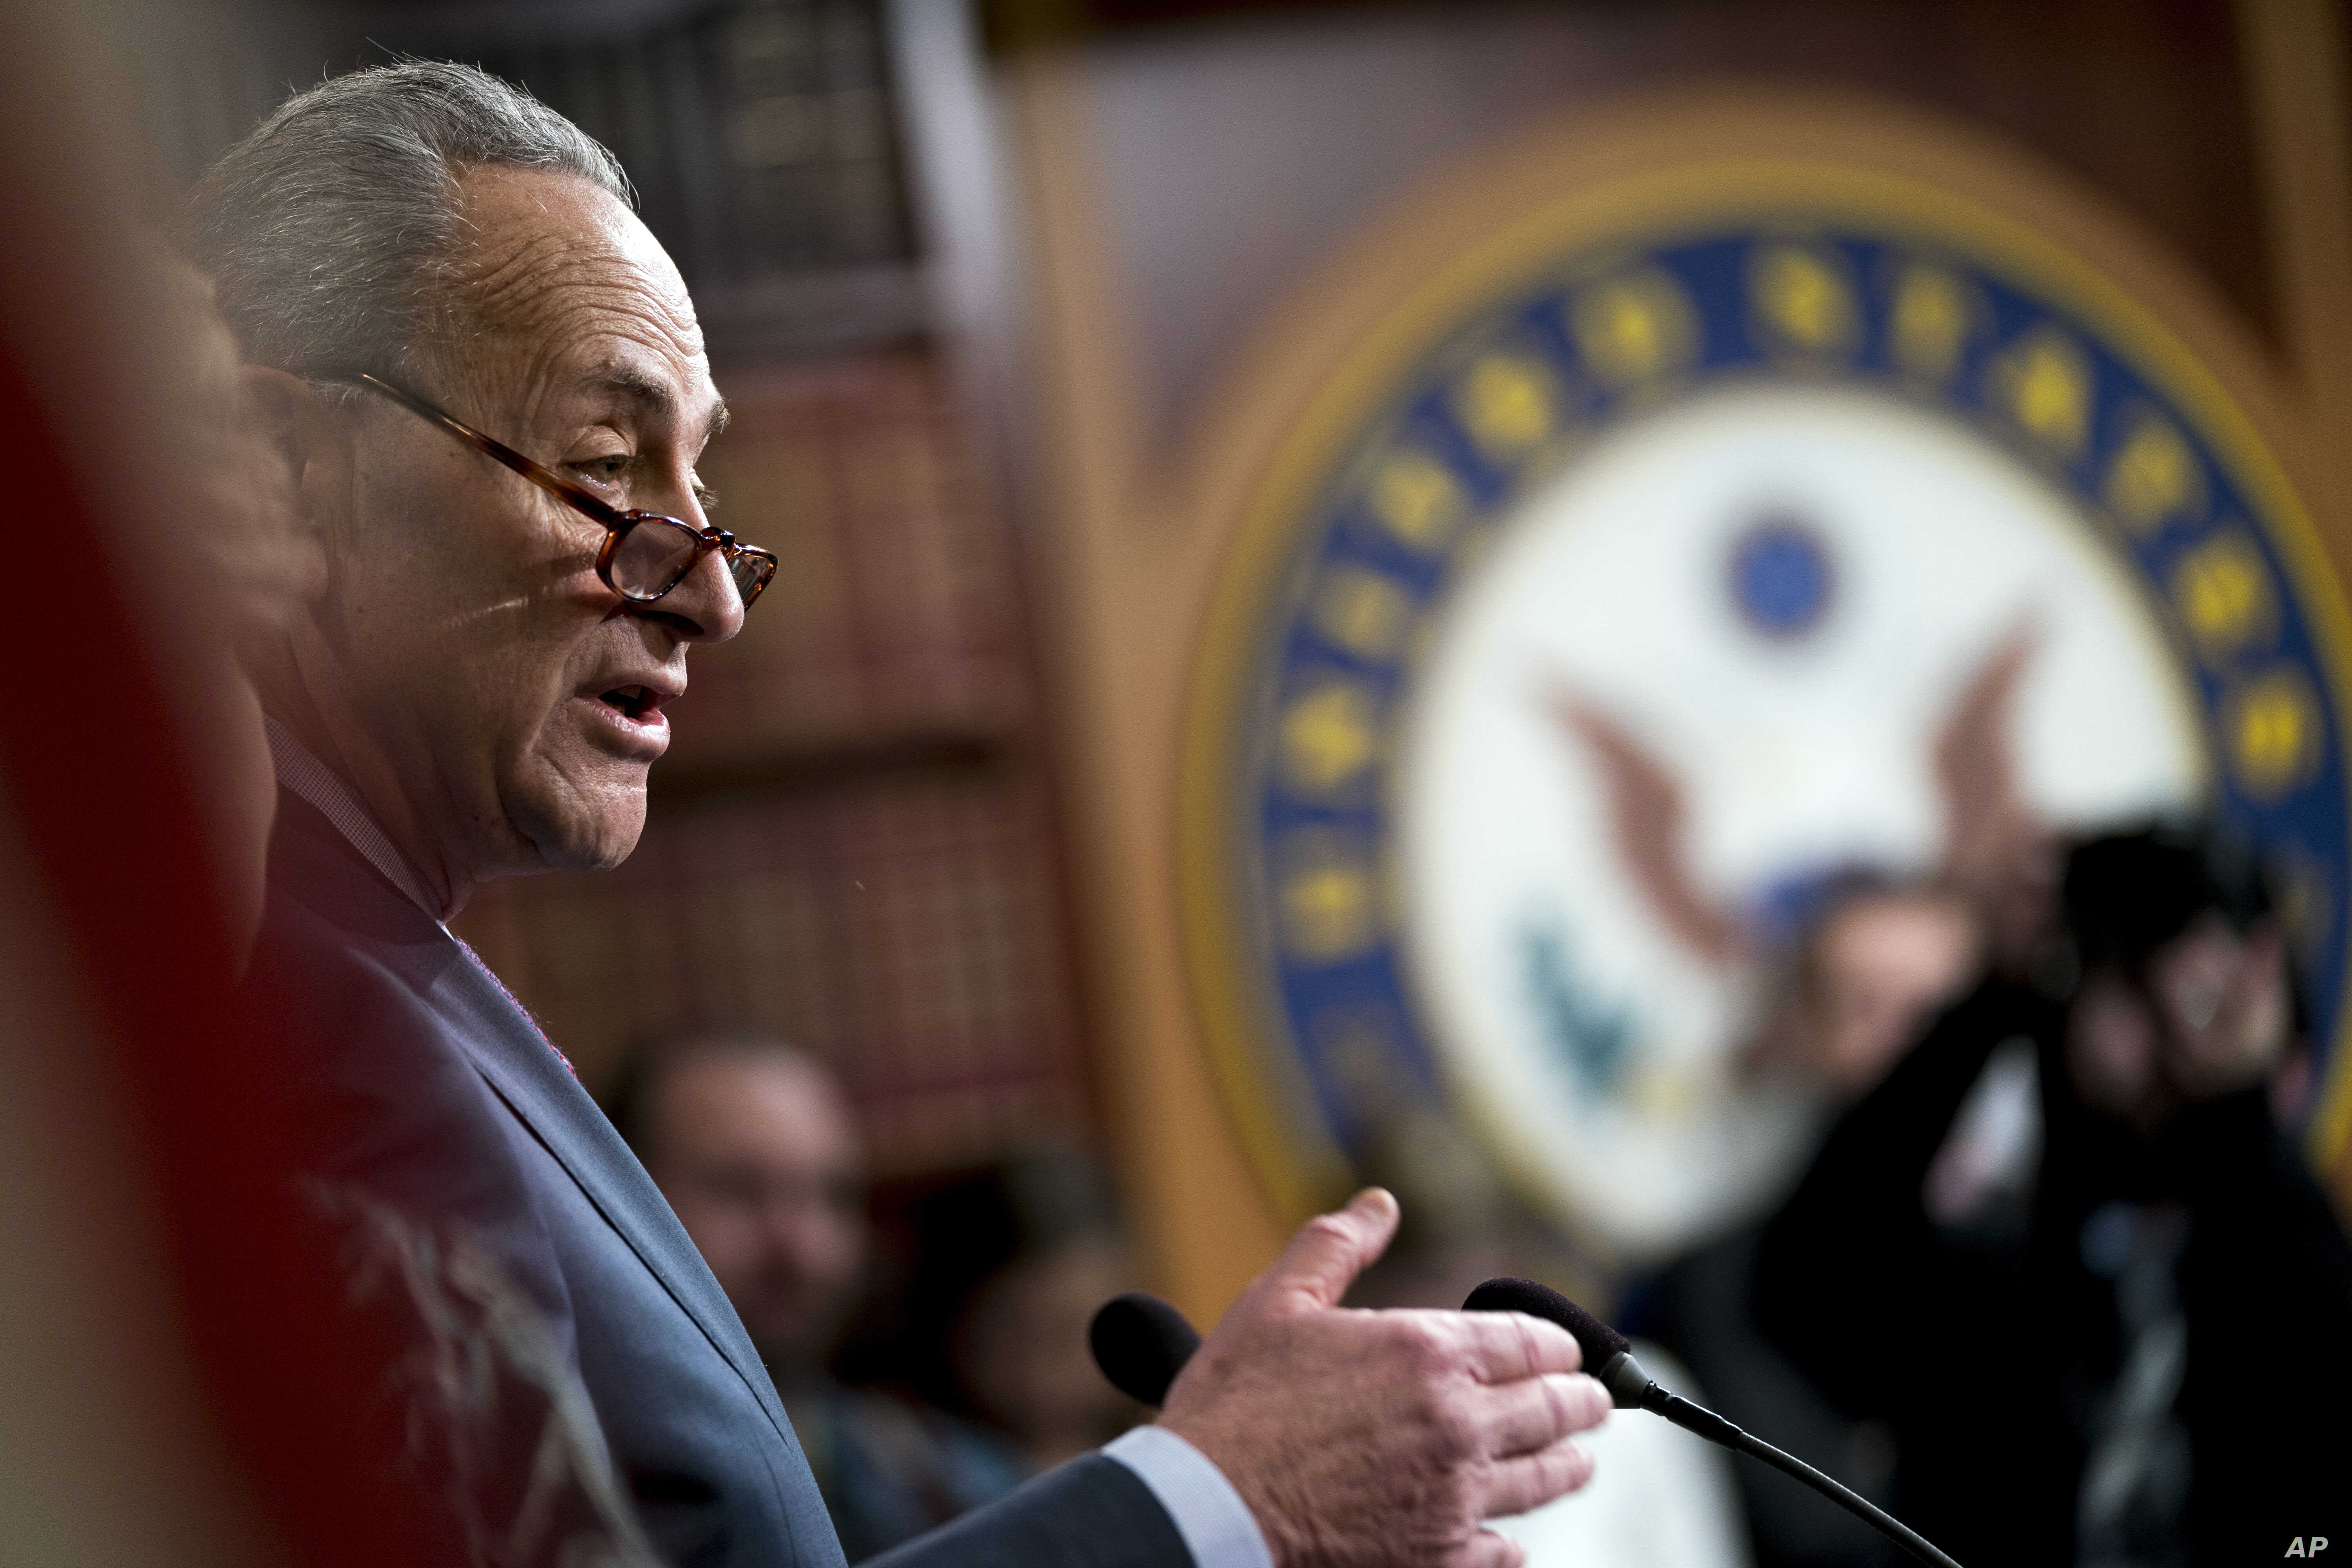 Senate Minority Leader Sen. Chuck Schumer of N.Y. speaks at a news conference on Capitol Hill in Washington, Dec. 21, 2017.